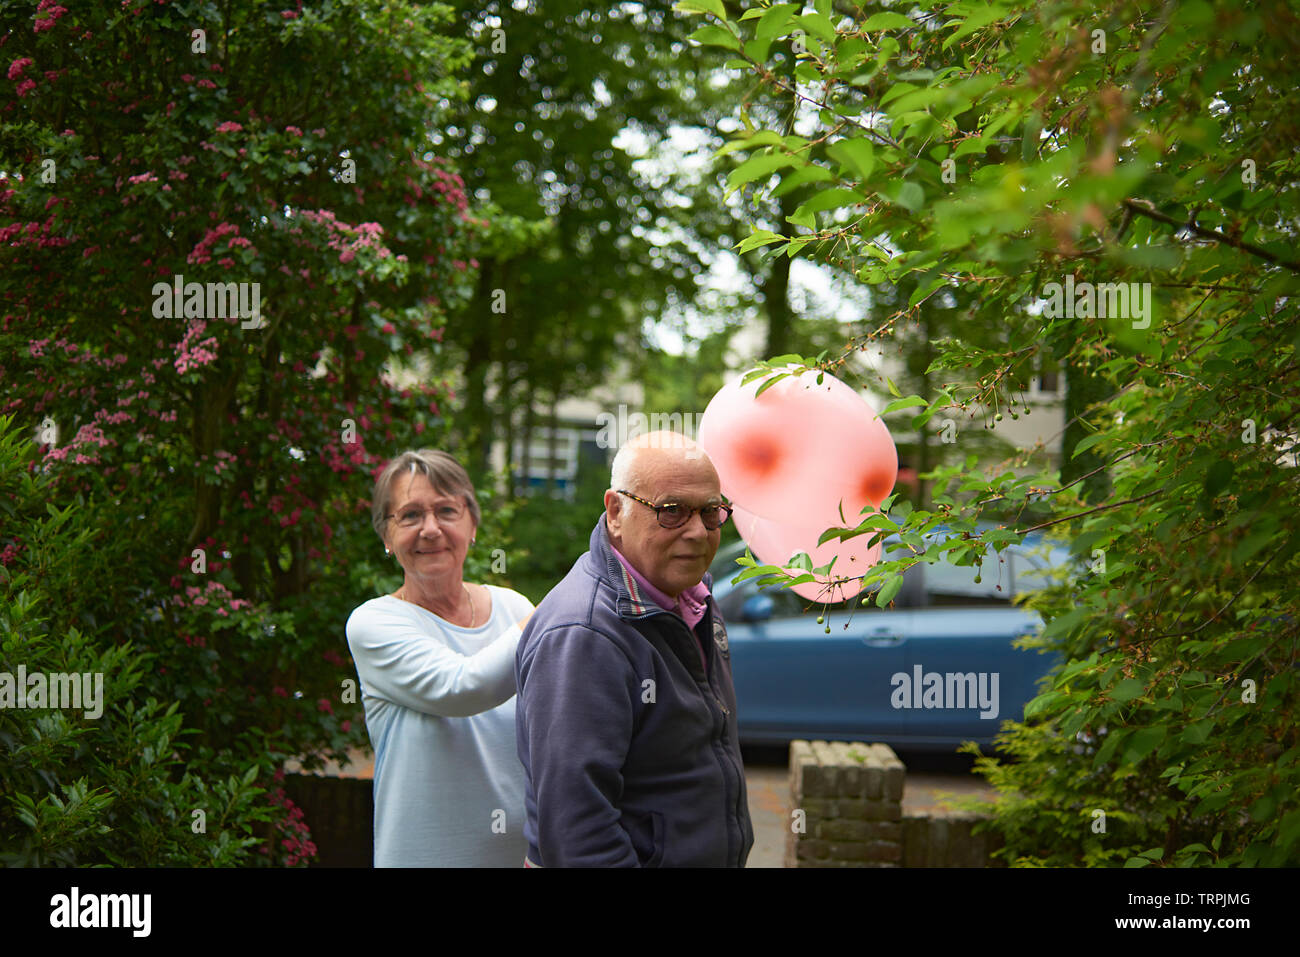 Grandparents in their front garden holding a large heart shaped balloon on their way out - Stock Image